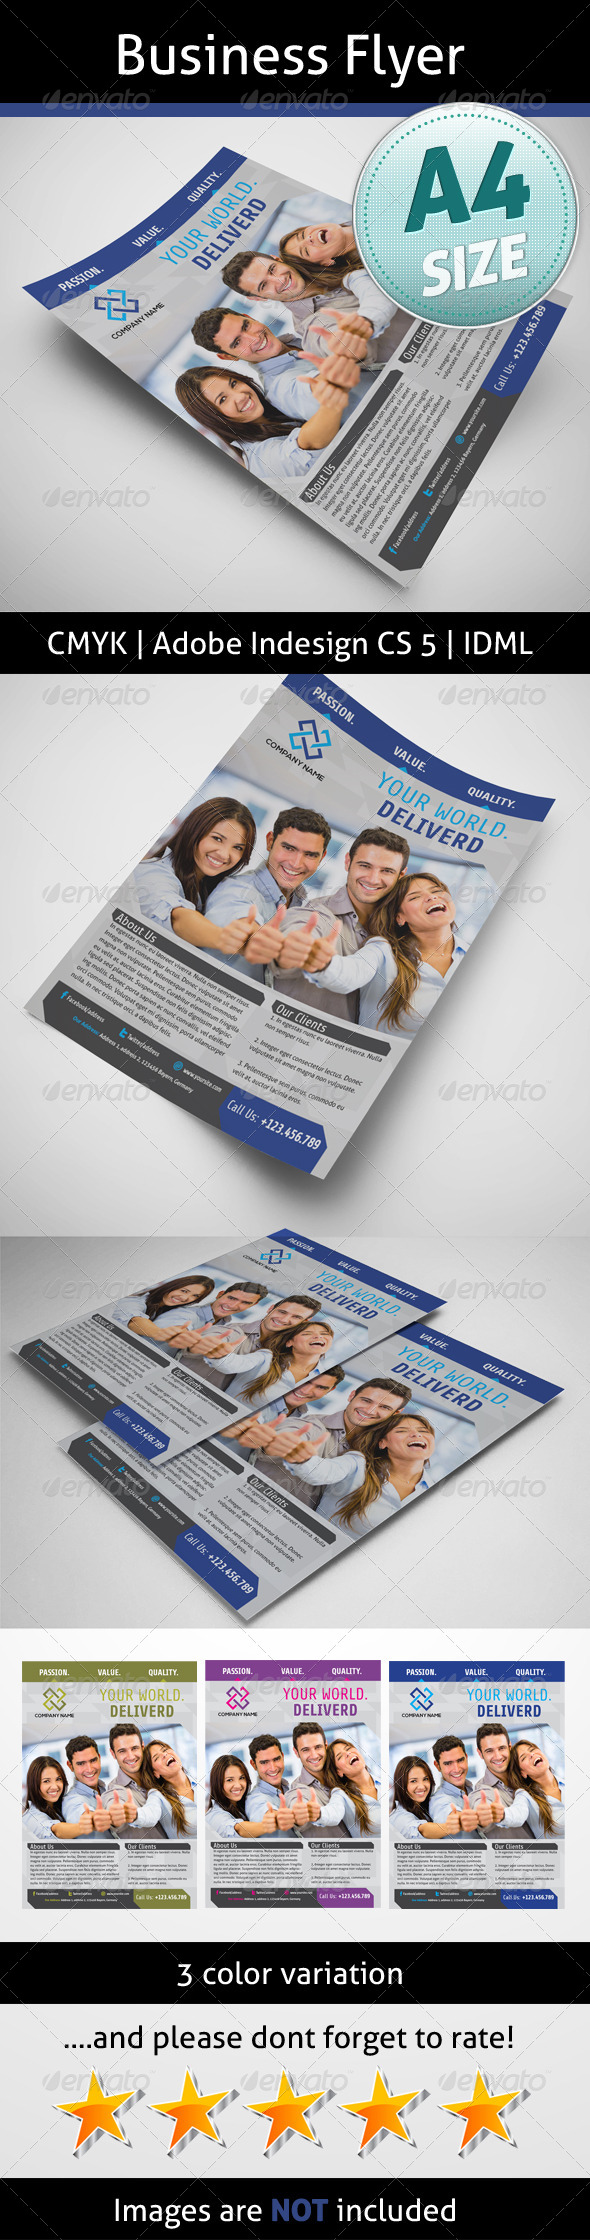 GraphicRiver Business Flyer 5166360